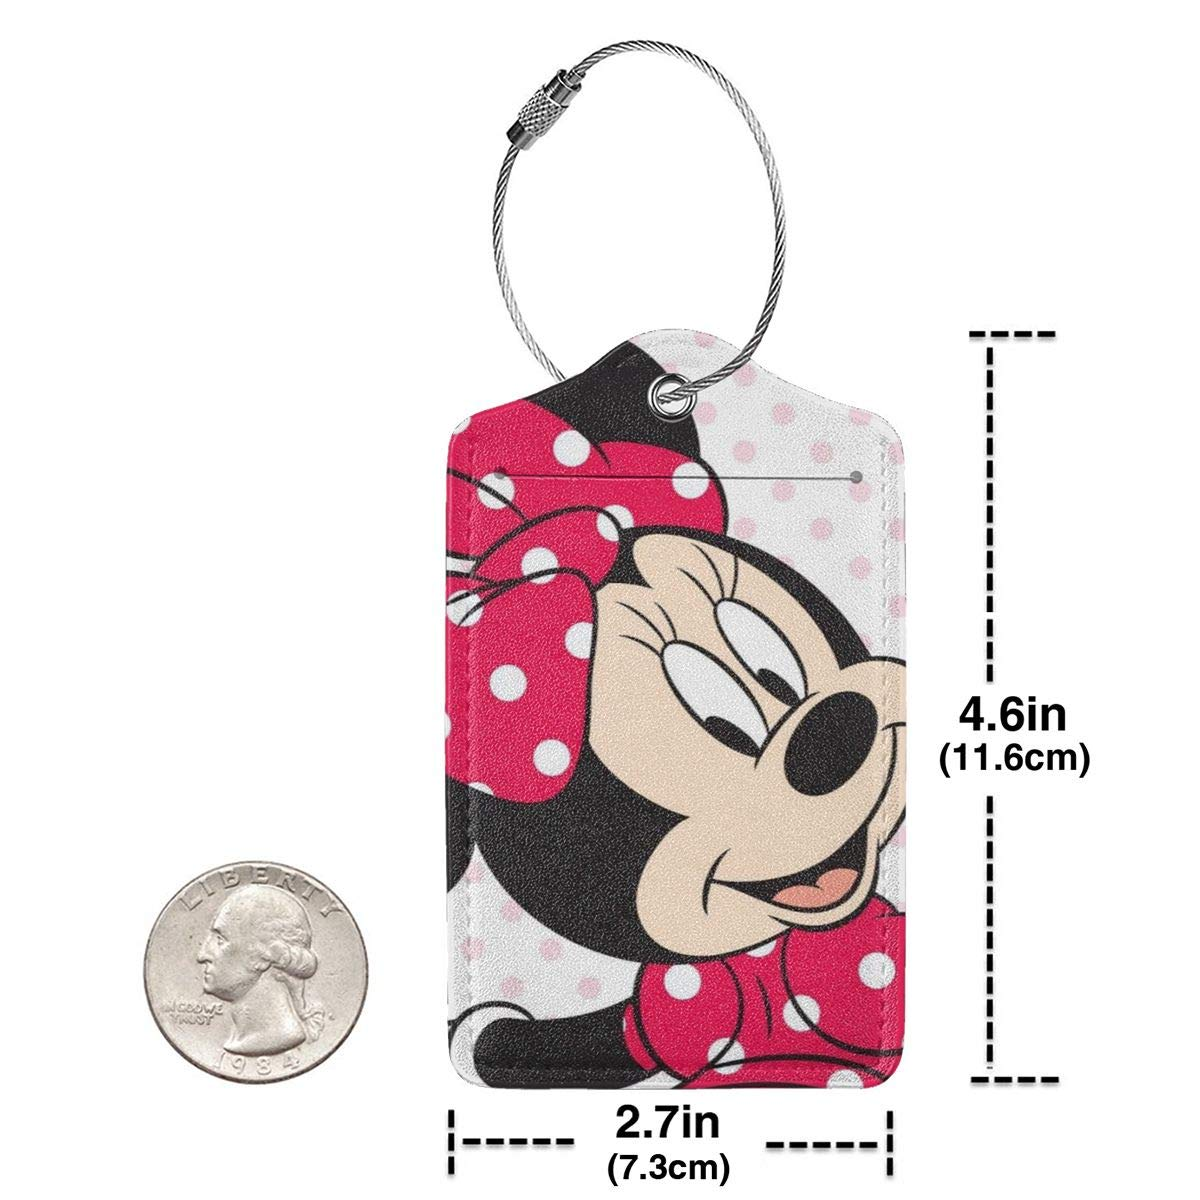 Fashion Mine Mouse Soft Leather Luggage Tags With Privacy Cover 1-4 Pcs Choose Suit For Travel,Vacation